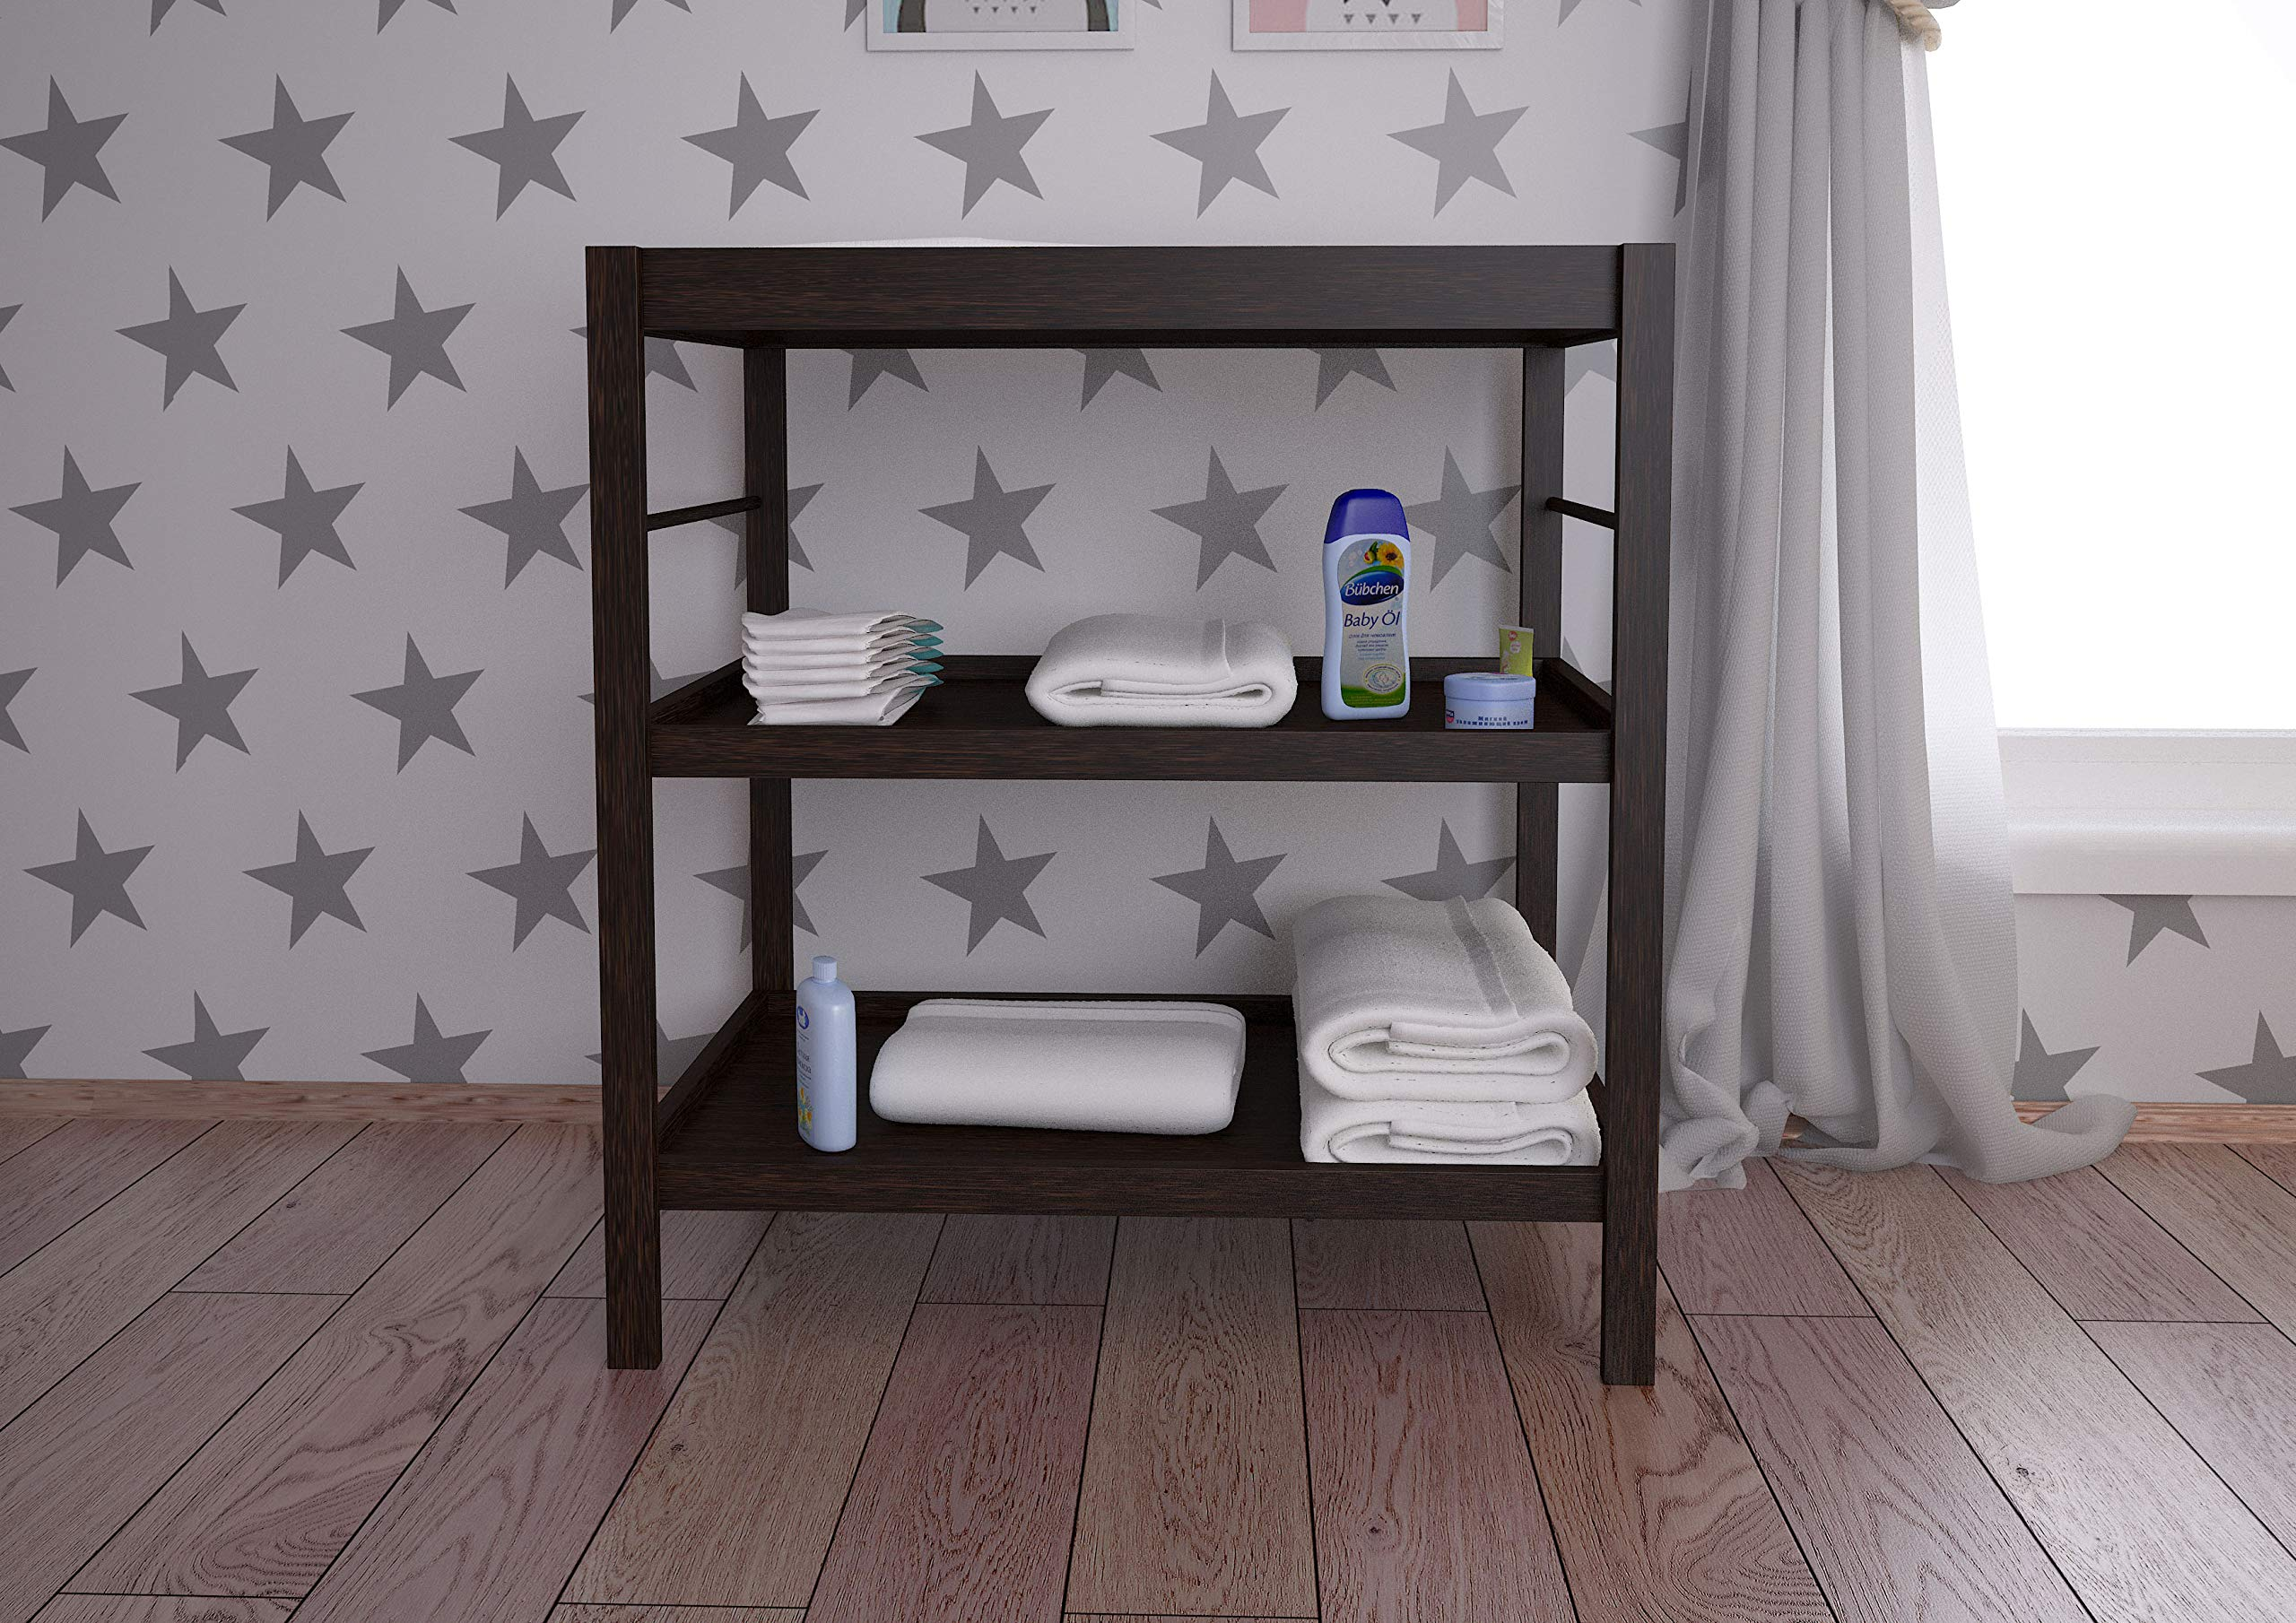 Polini Simple Changing Table 1080, Wenge Kidsaw Comfortable height to change 2 storage compartments for changing utensils Suitable for all current changing mattresses (70x50cm) 4